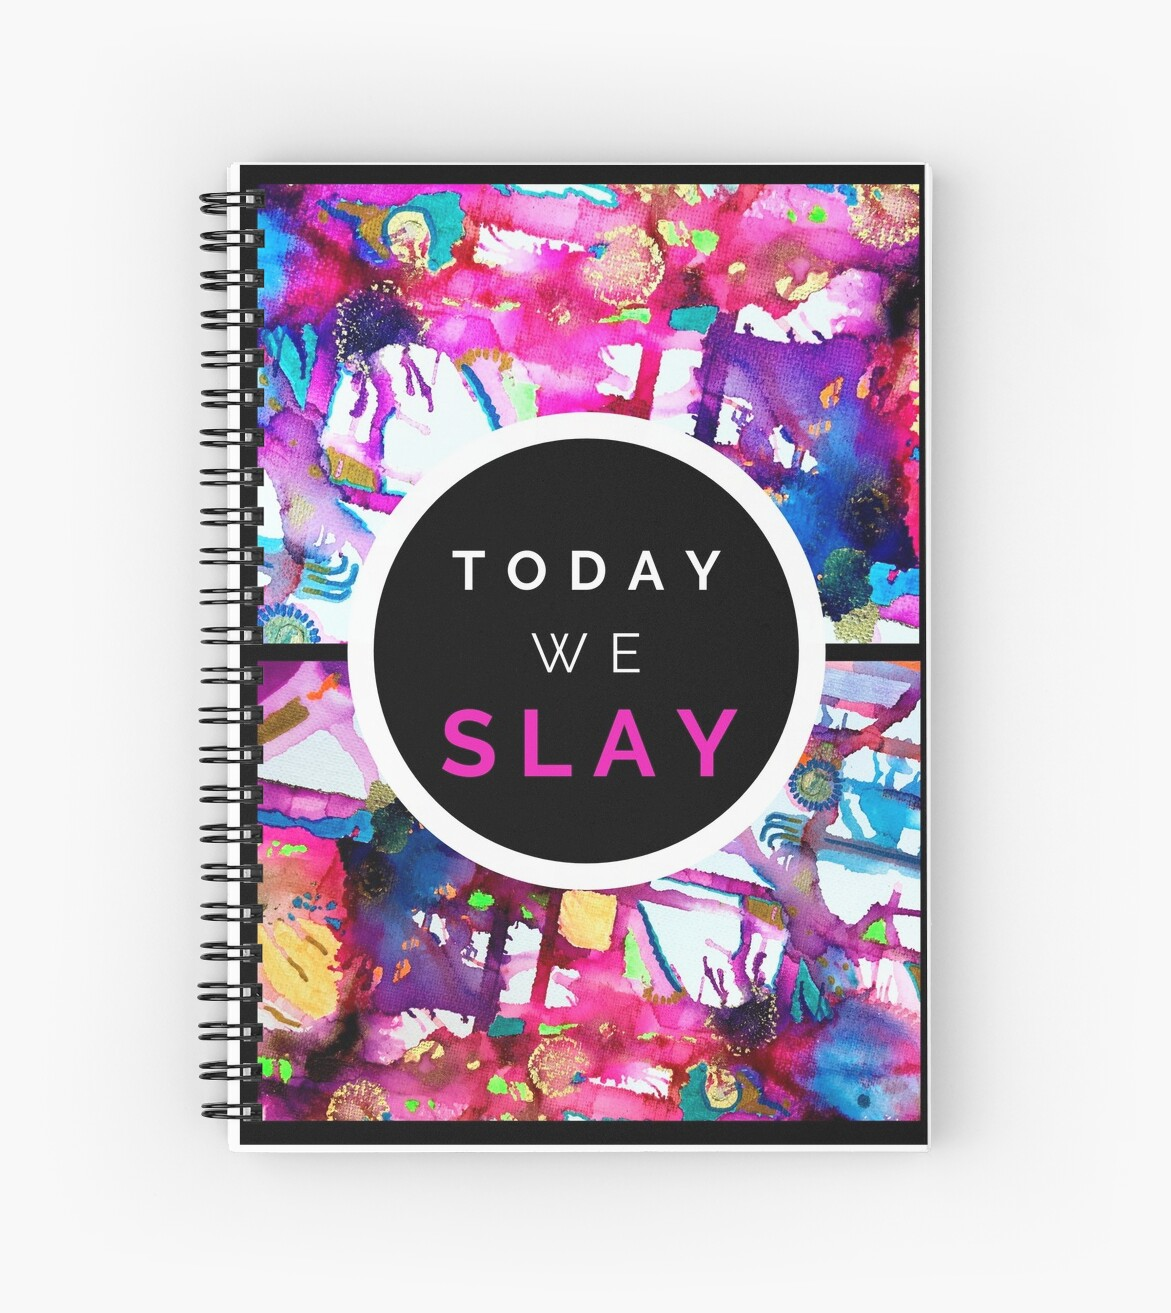 Today we Slay by Rachael Hope